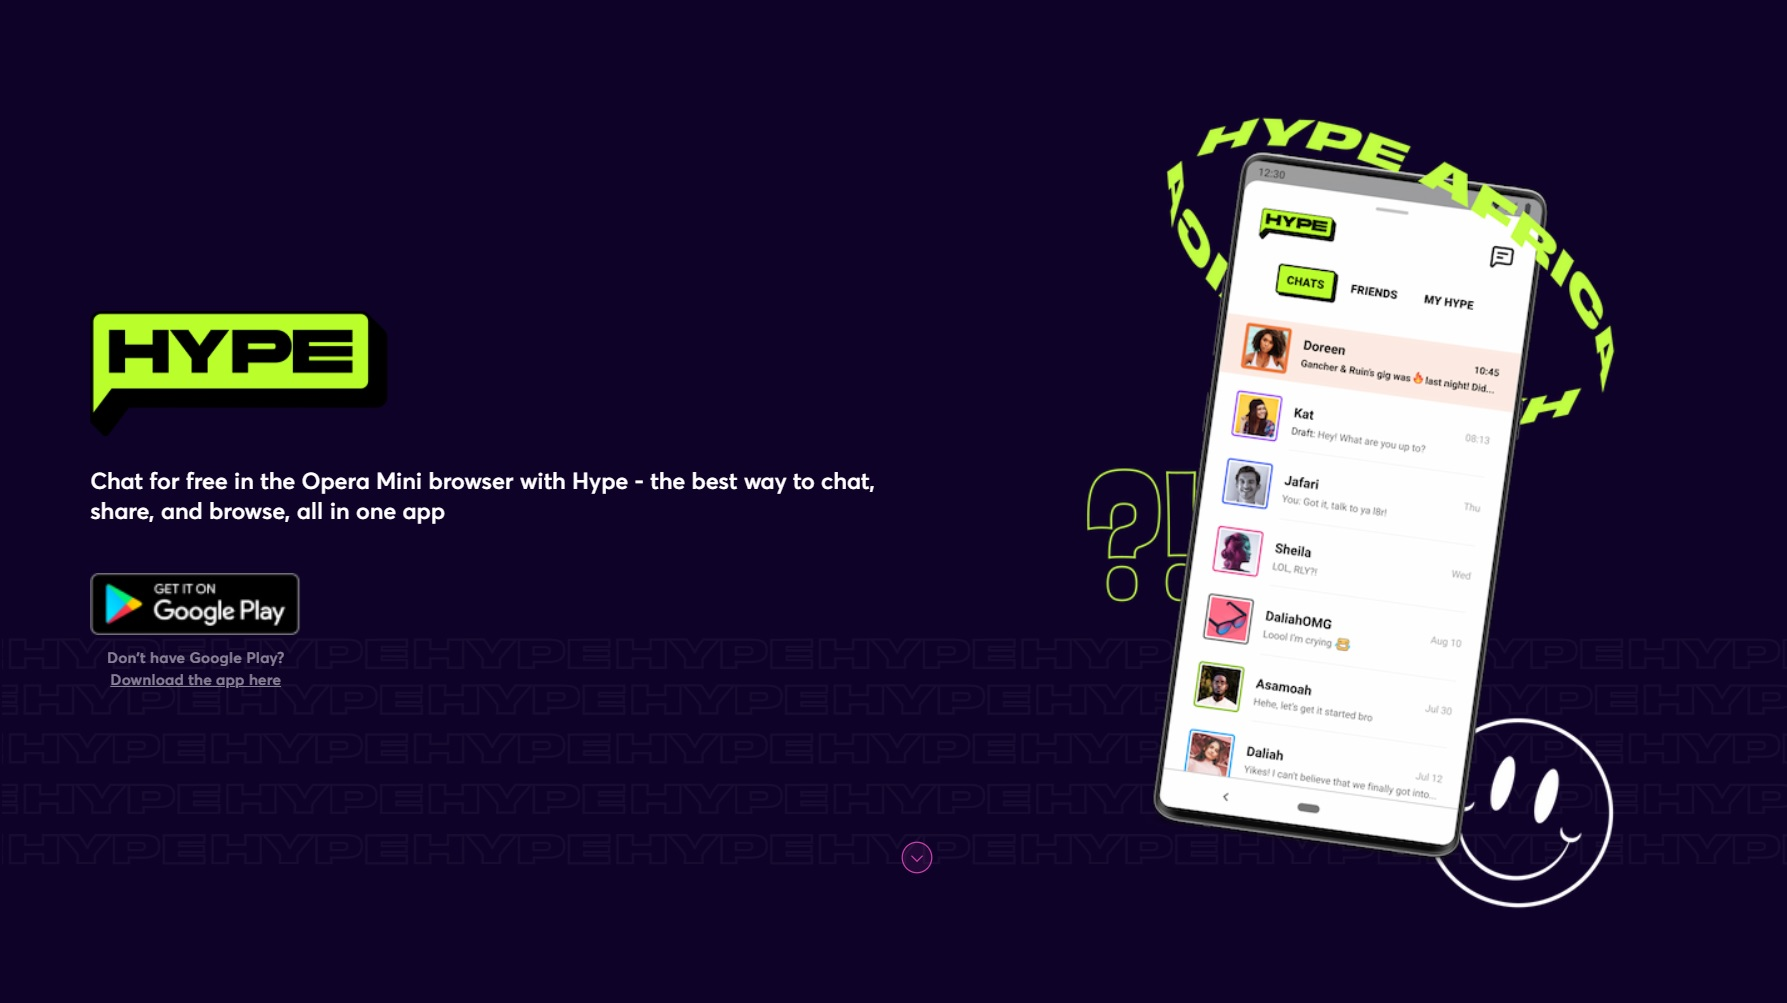 Opera launches Hype chat app in South Africa - Memeburn